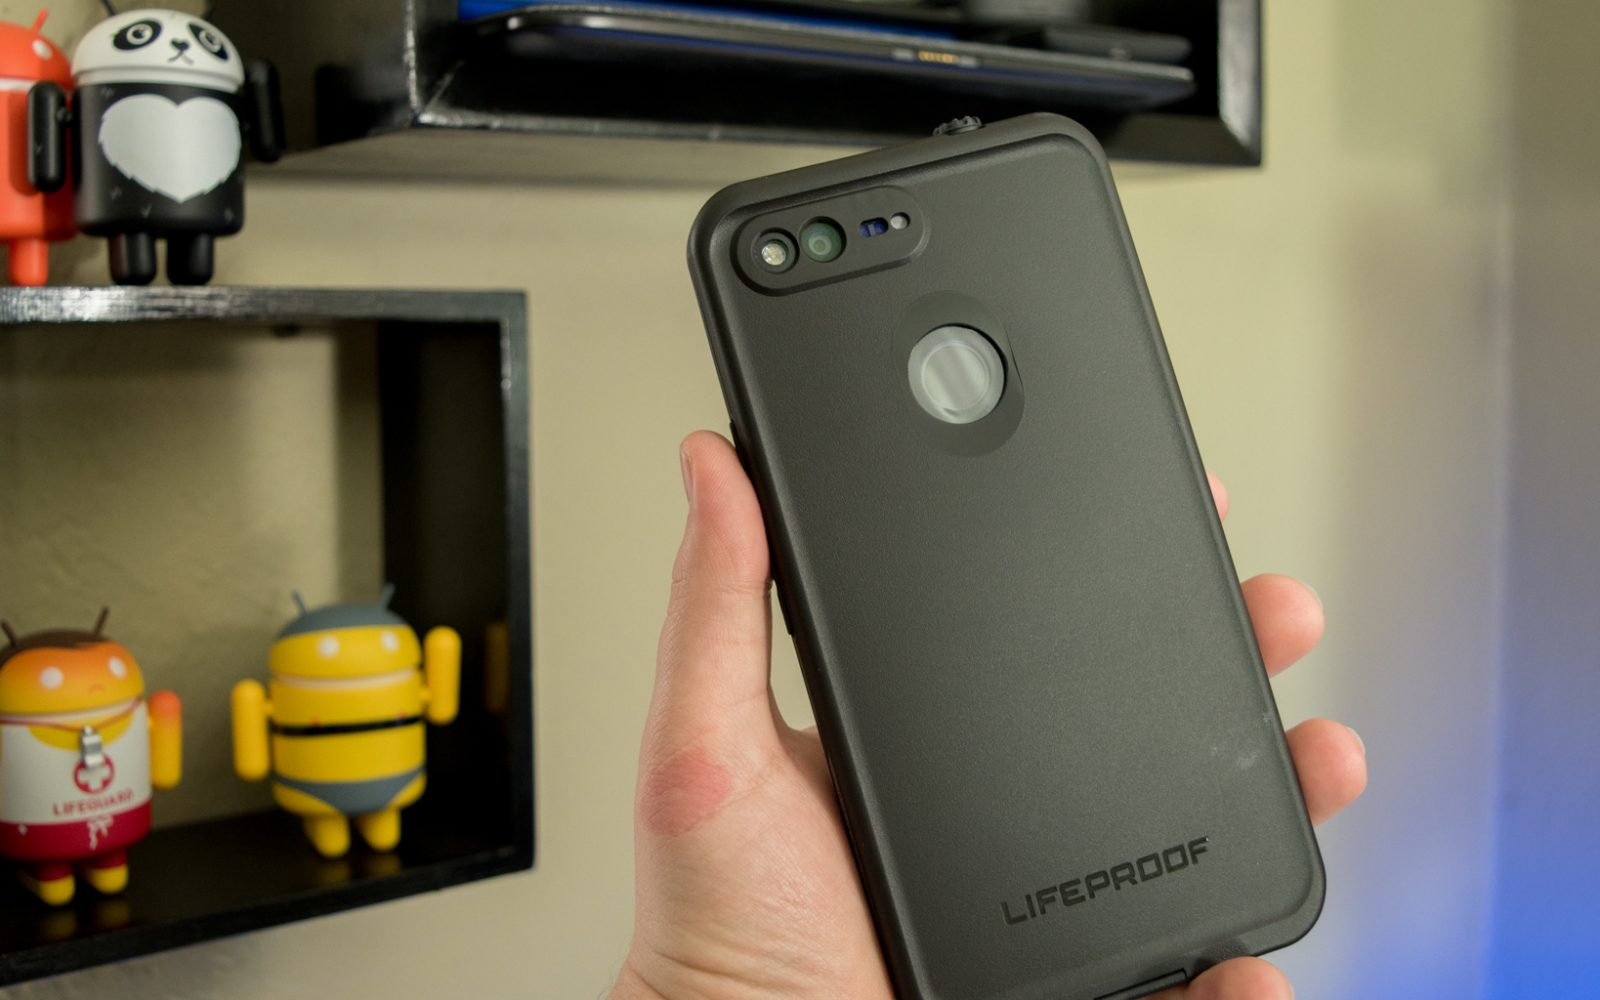 promo code 6bce2 d6a7d Hands-on: The FRE LifeProof case is great for protecting your Google ...